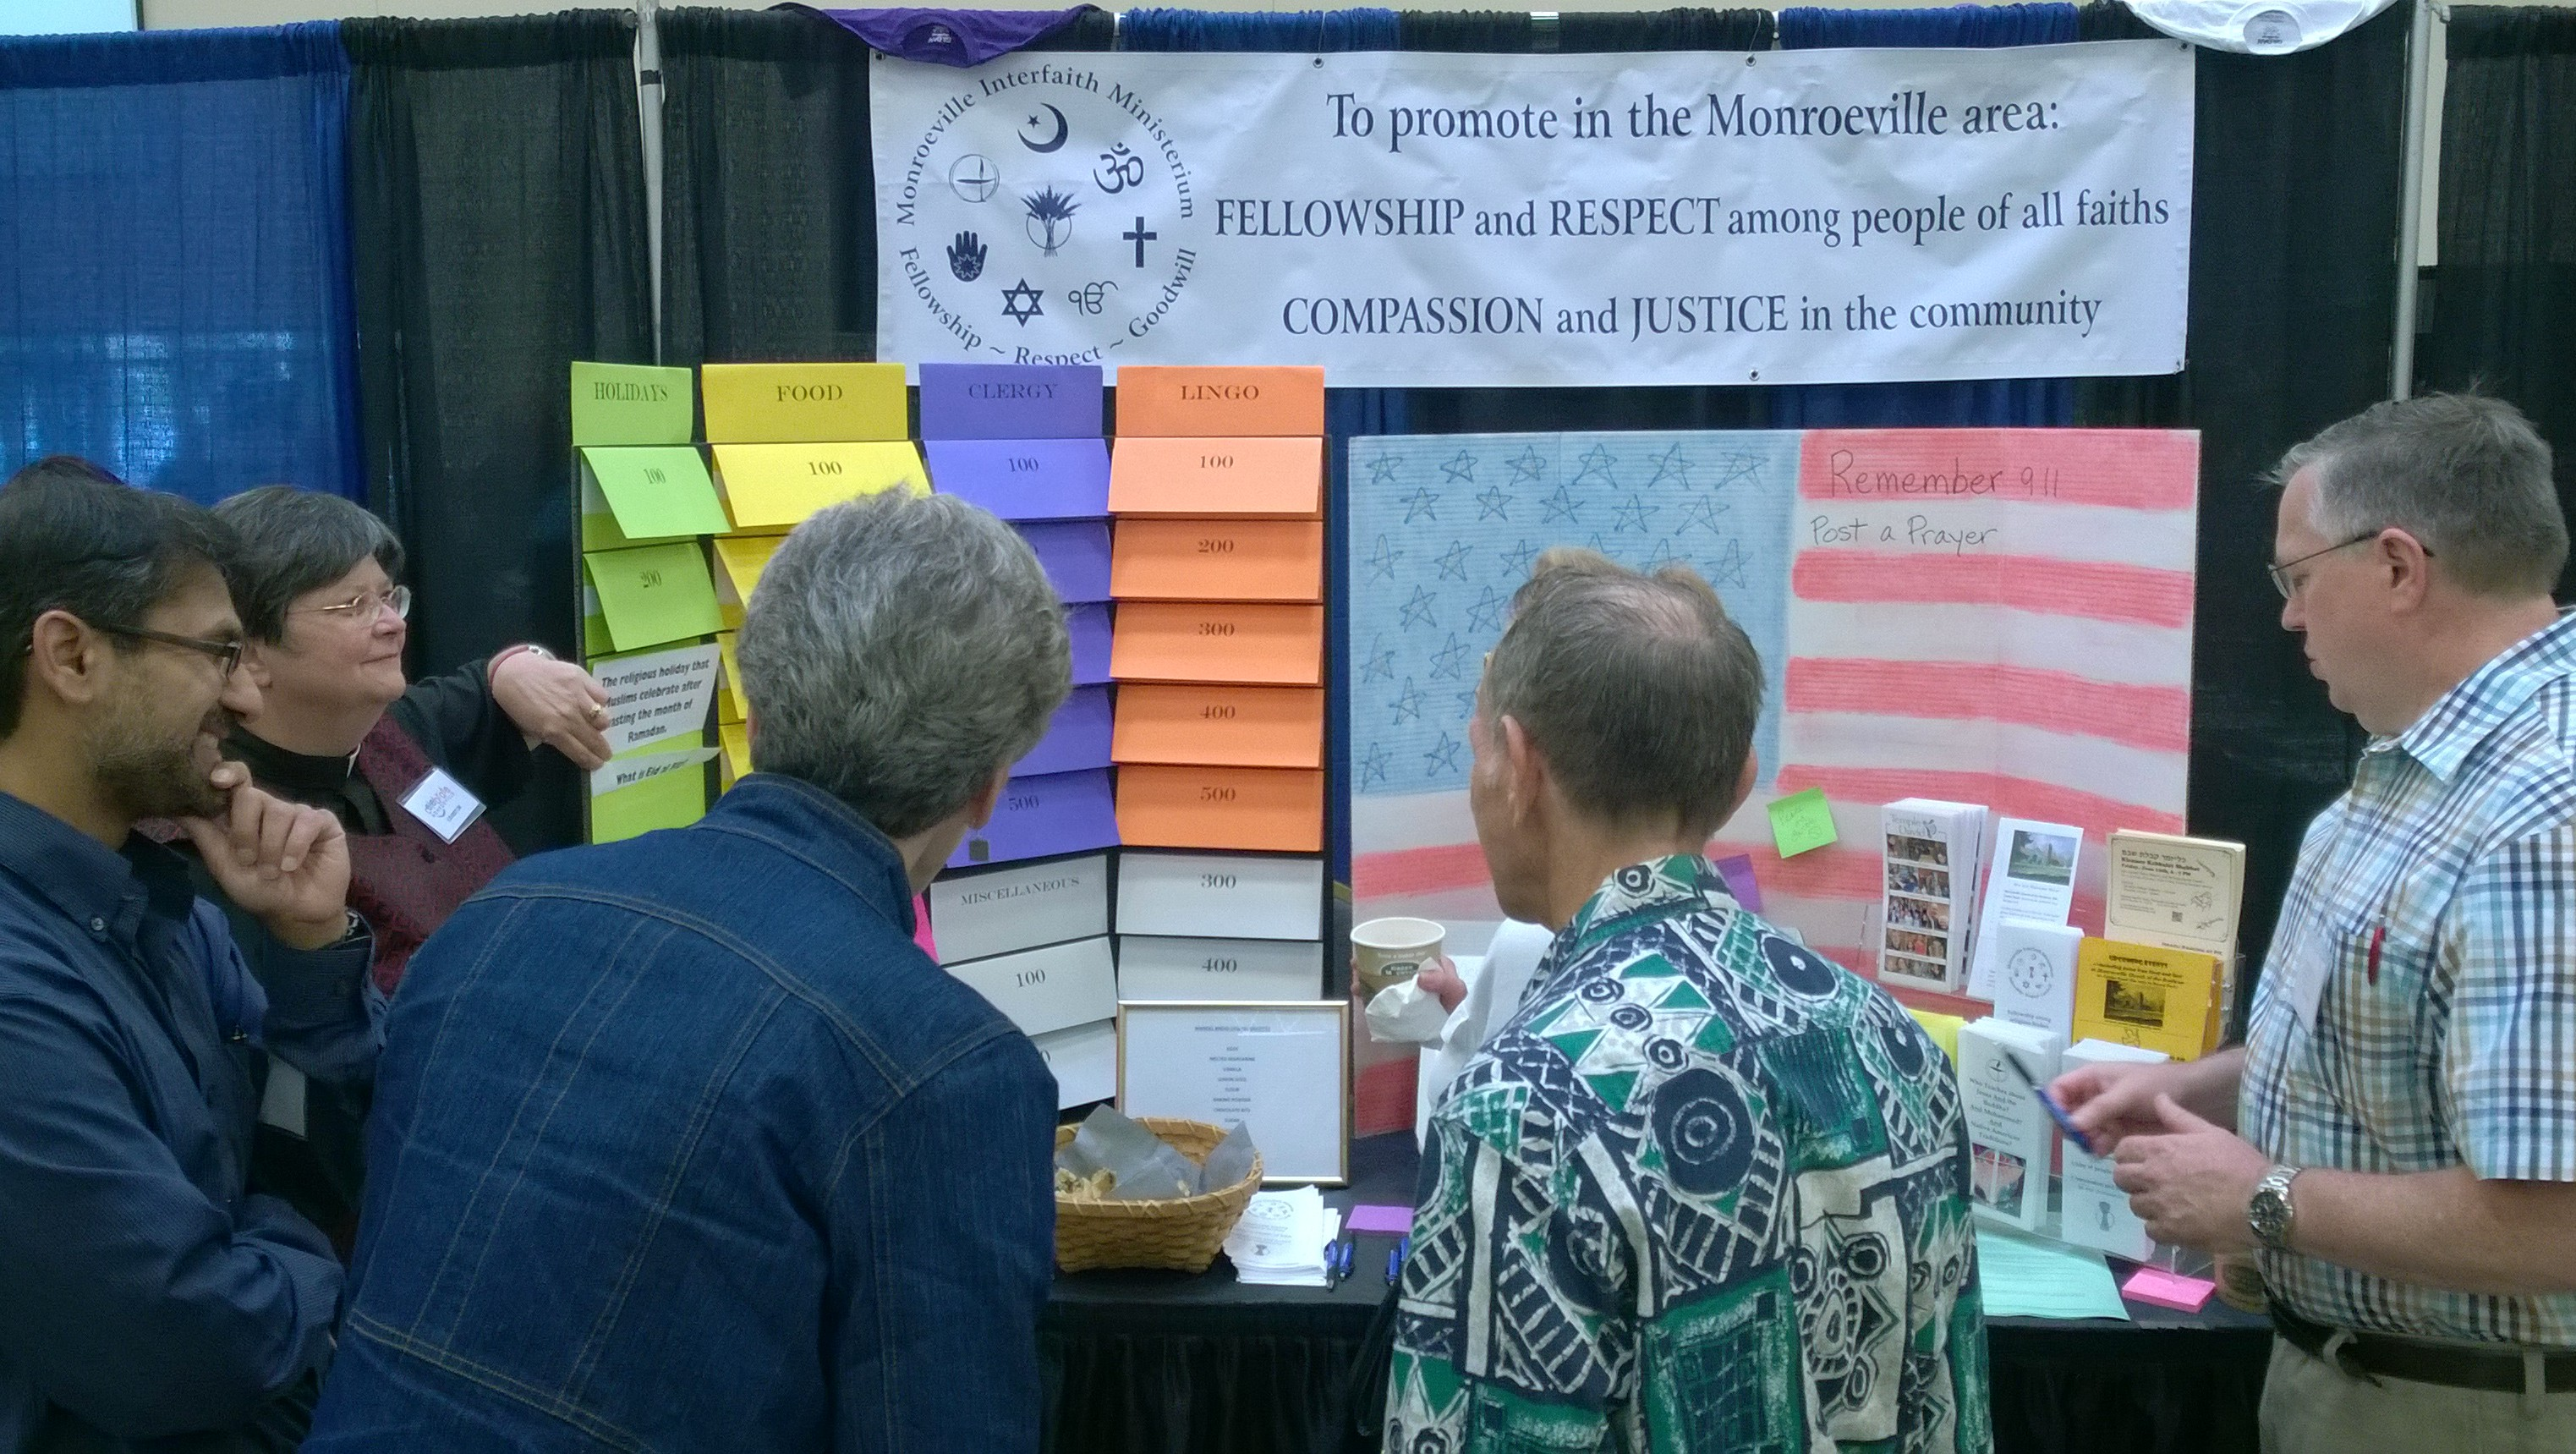 Celebrate Monroeville booth